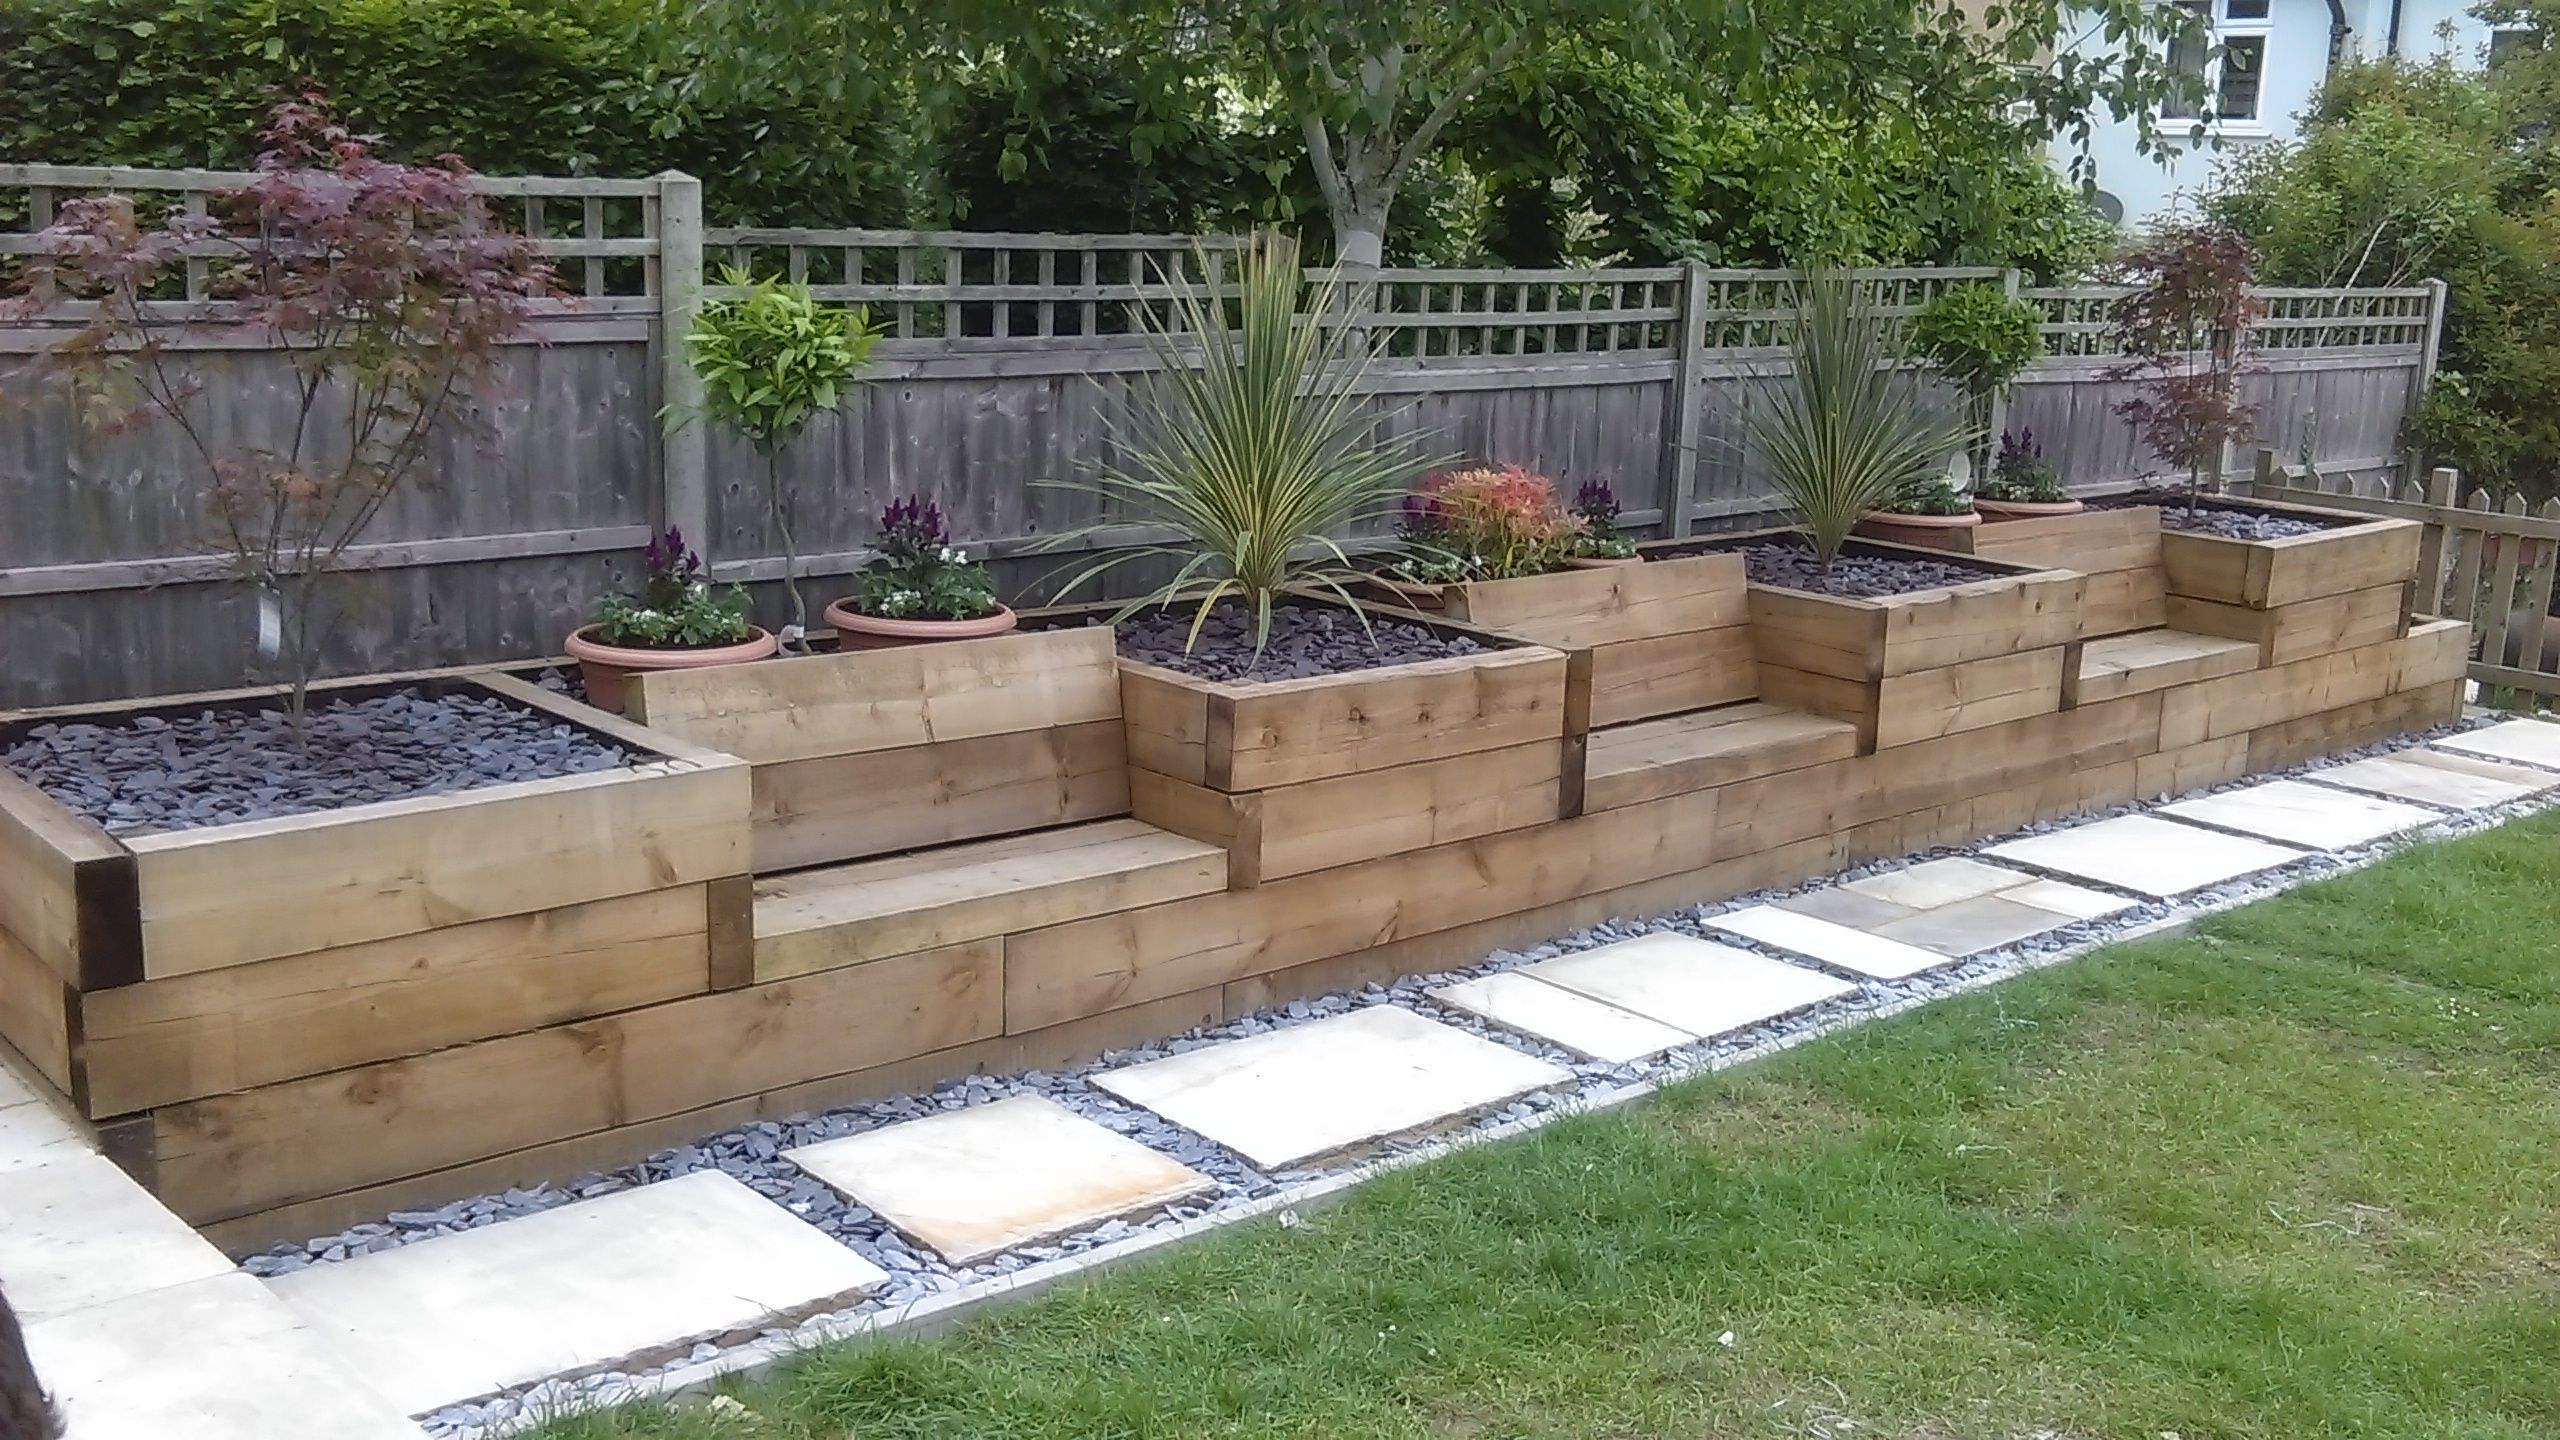 Using Railway Sleepers For Raised Vegetable Beds Raised Beds With Integrated Garden Seating Made From Railway